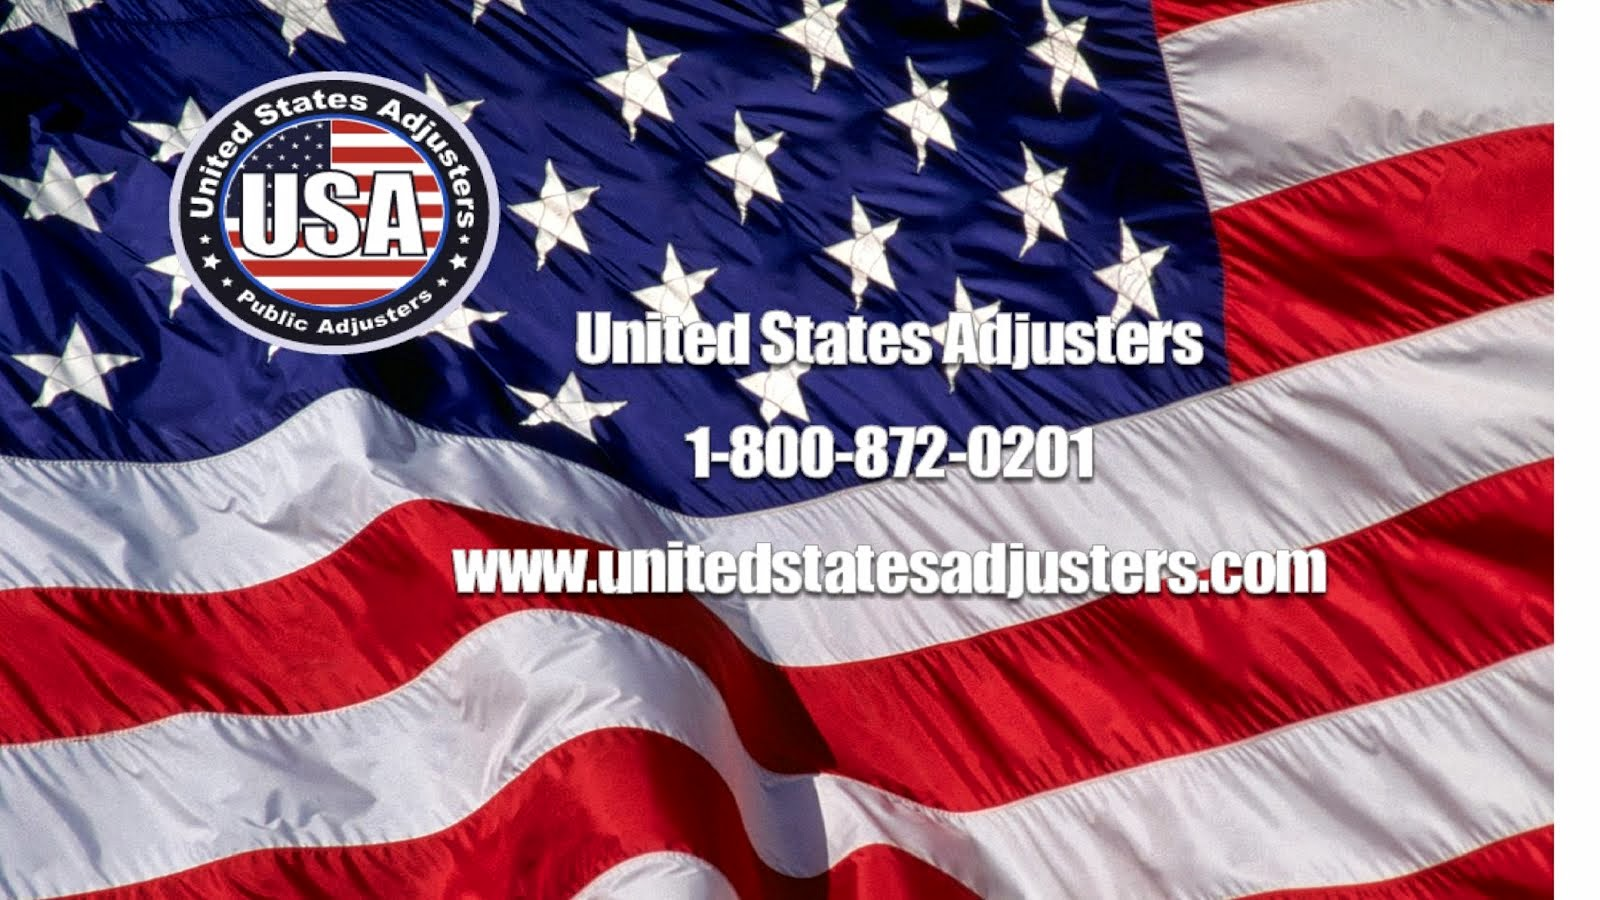 United States Adjusters - Public Insurance Adjuster